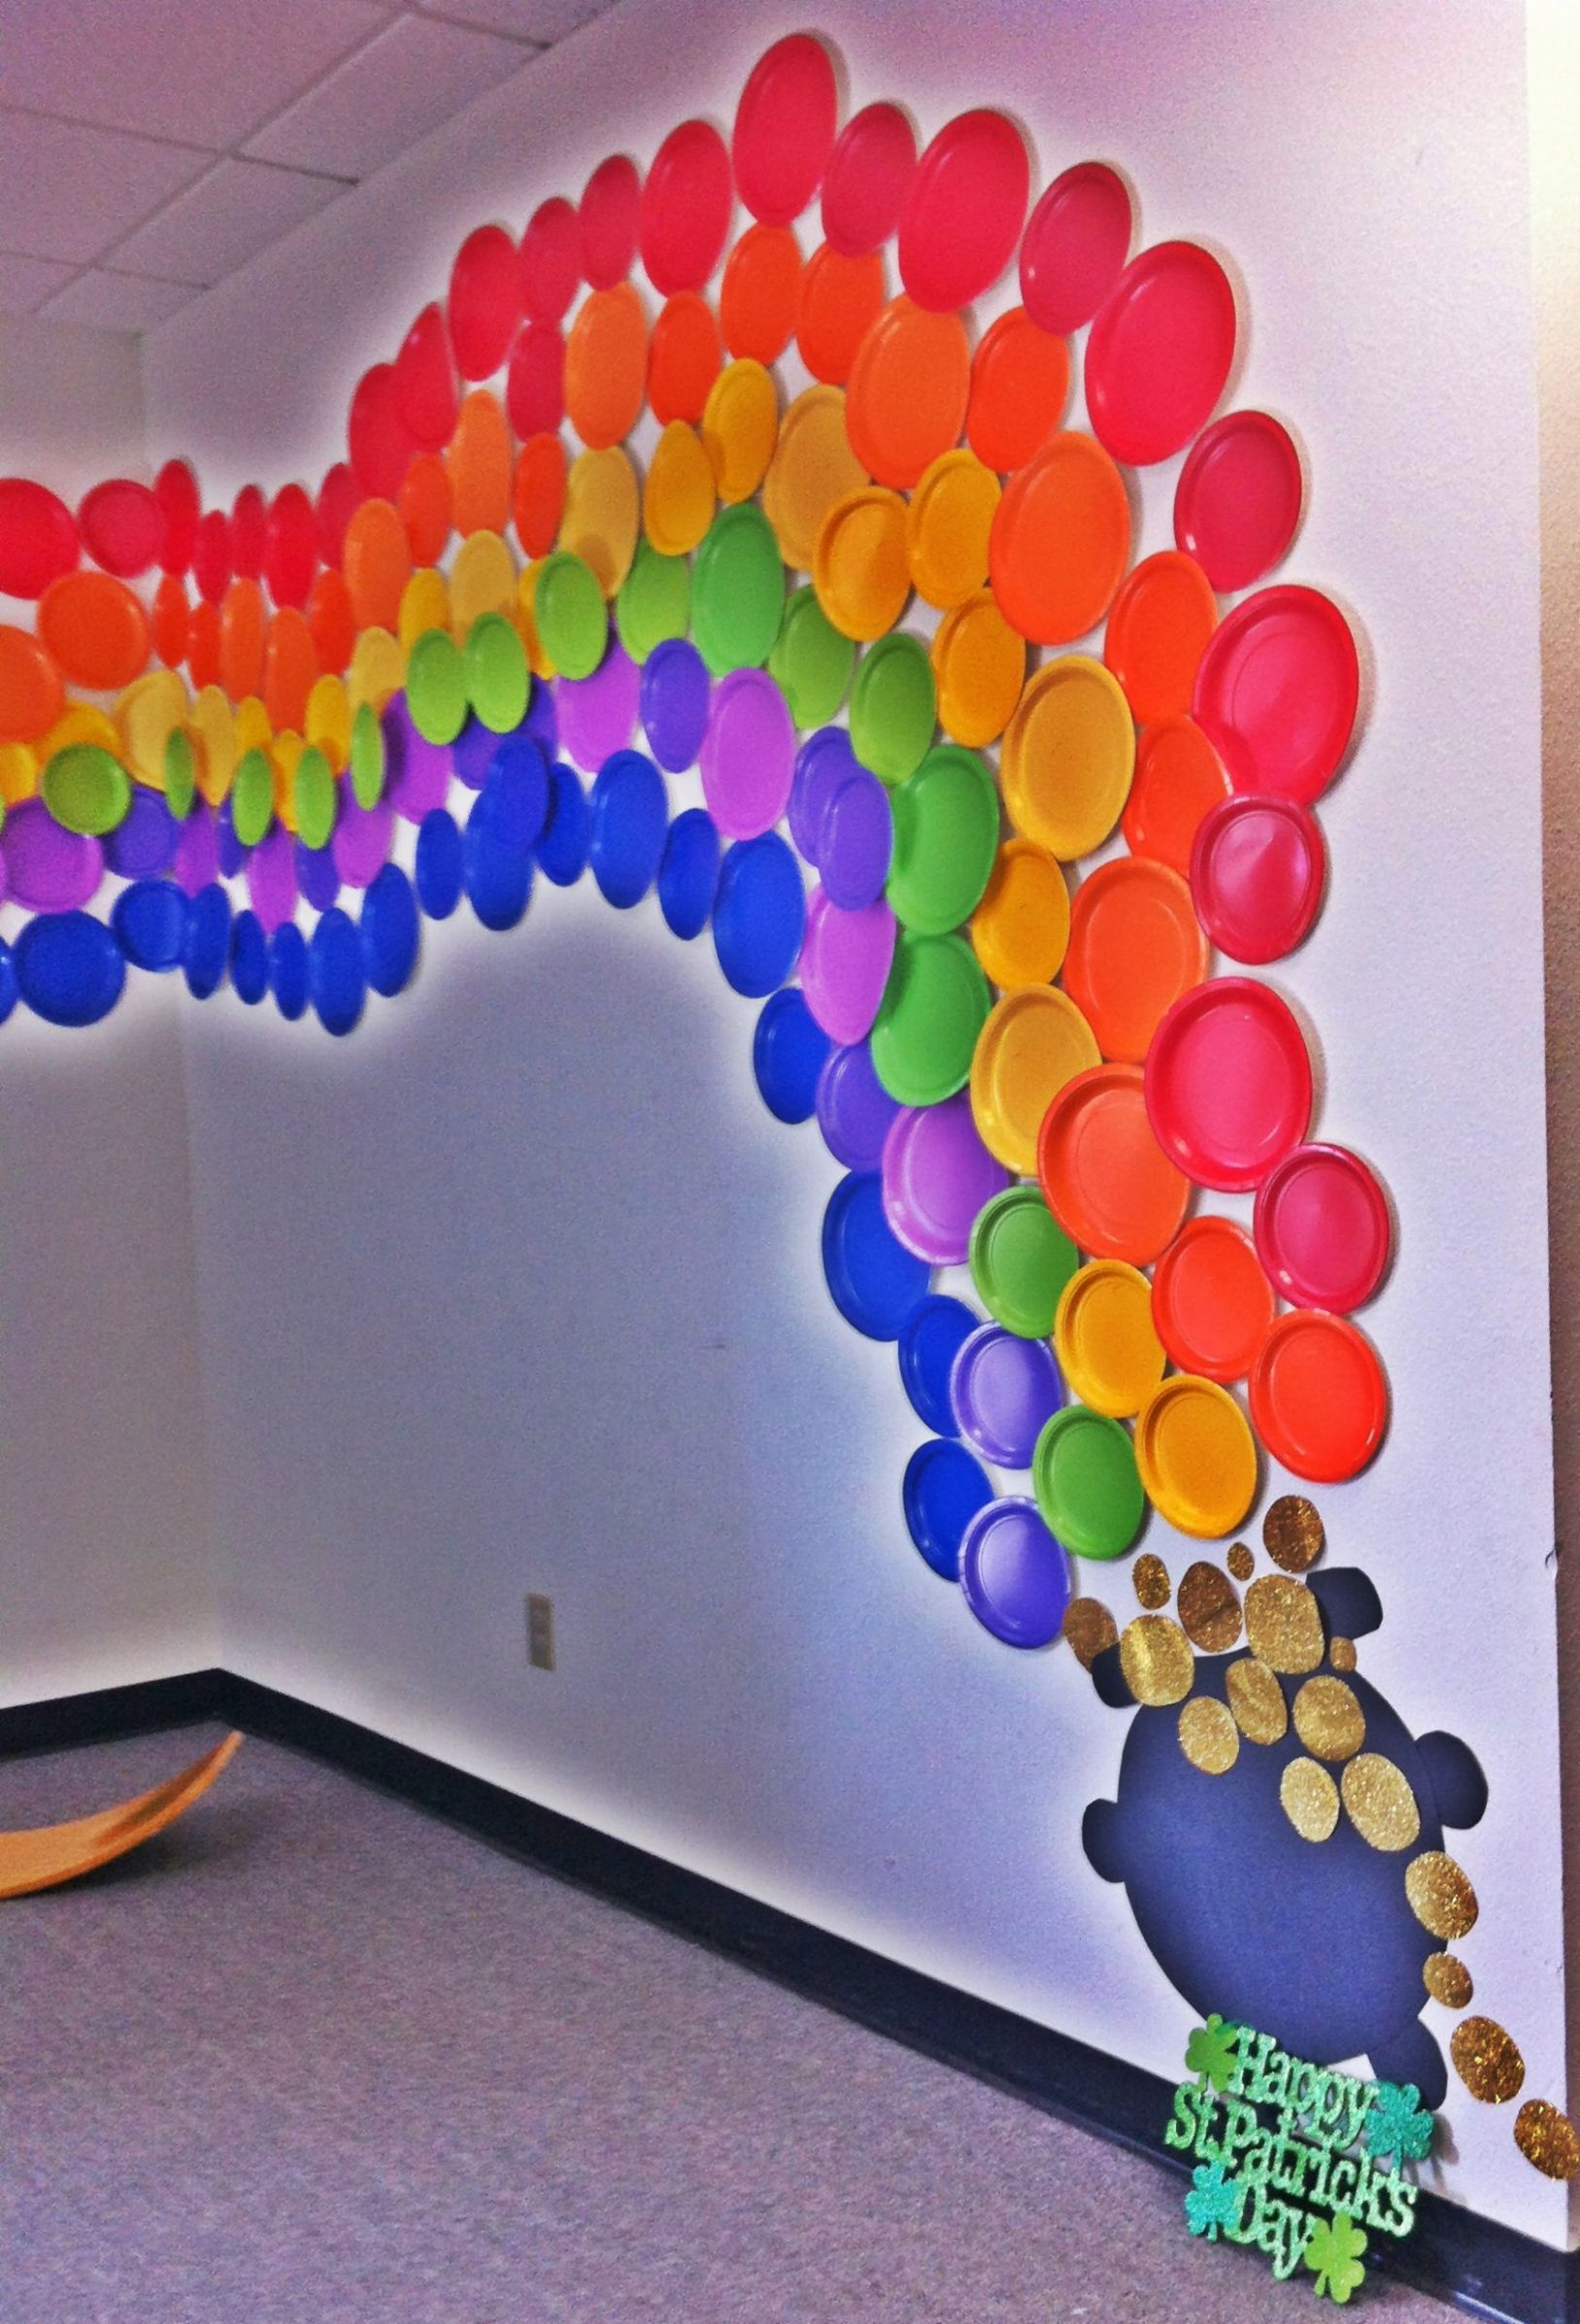 Rainbow wall decor to liven any office (With images) | Rainbow ..